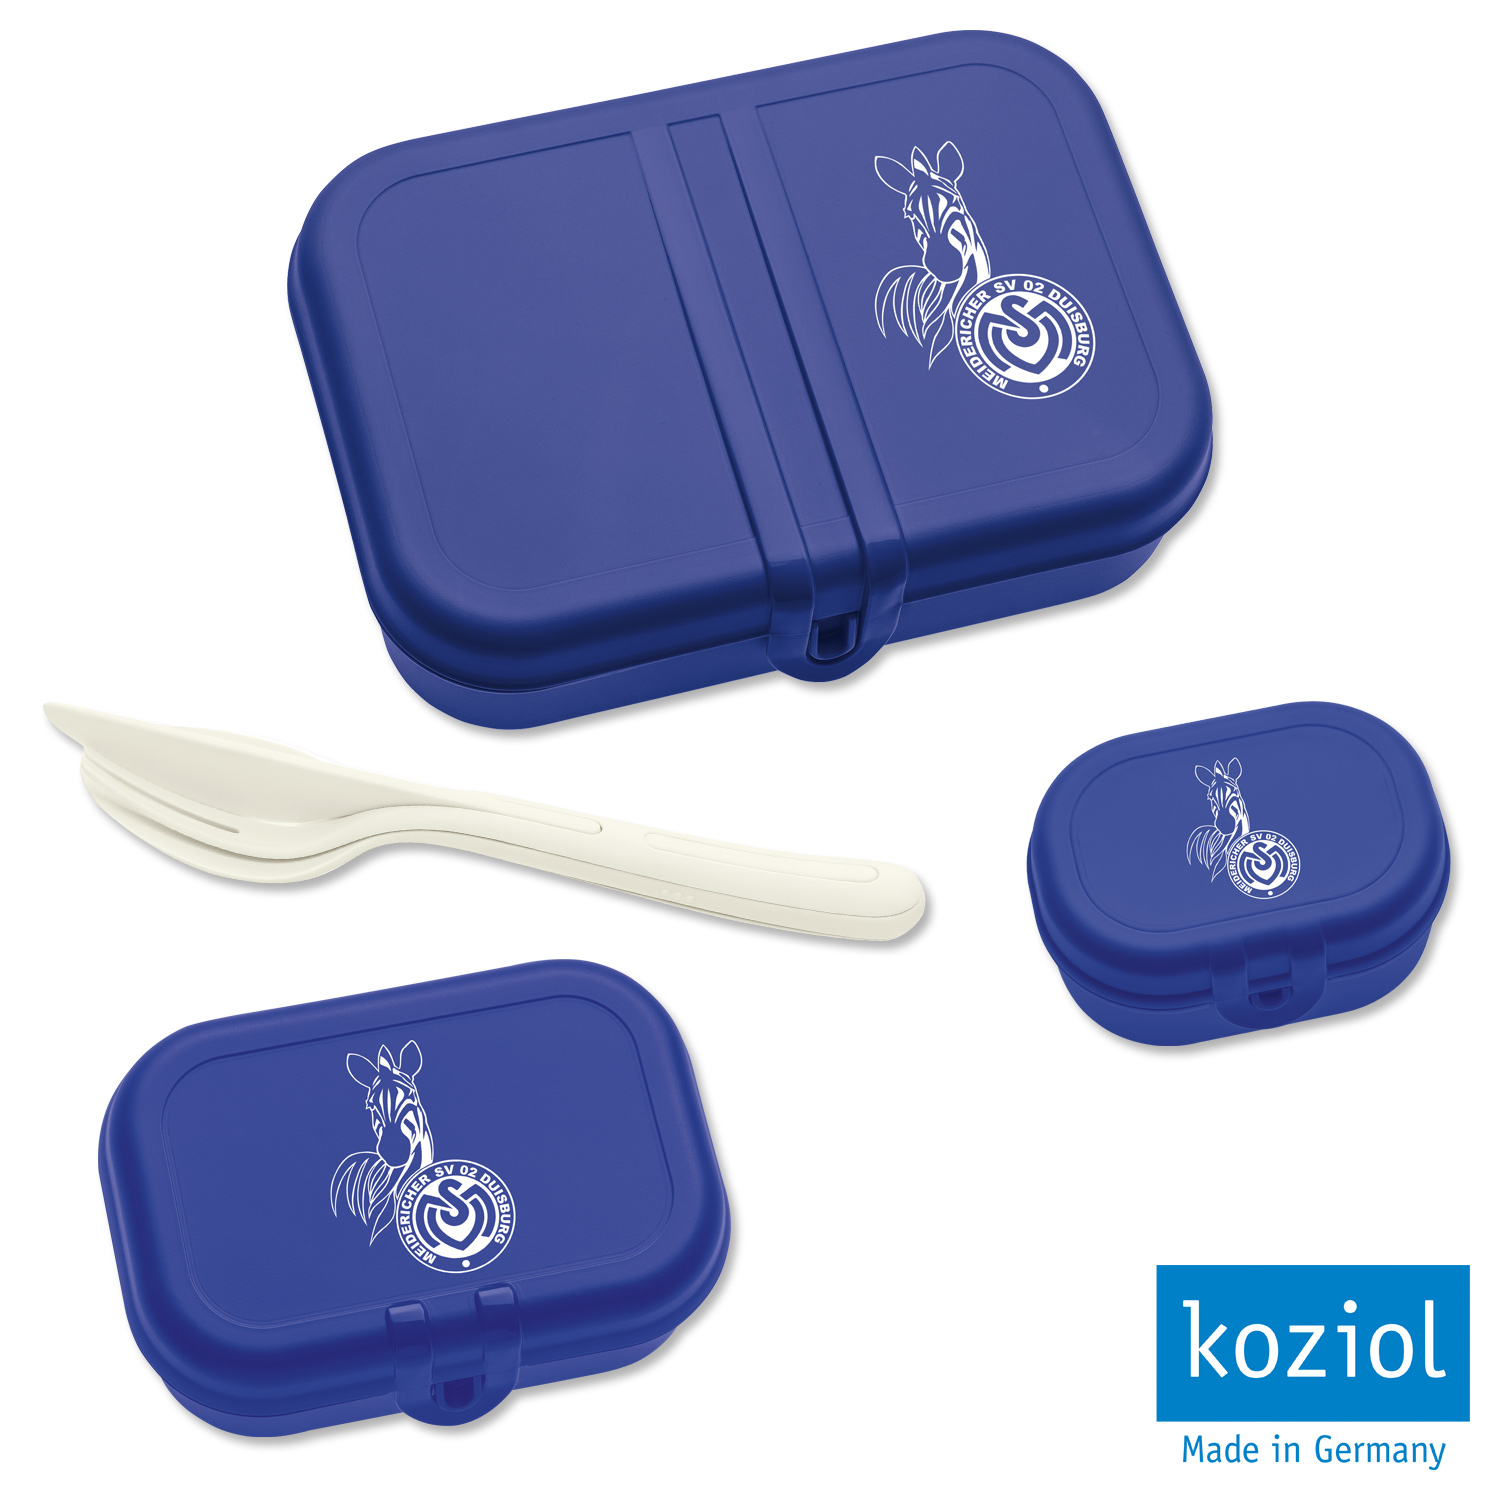 koziol Lunchbox-Set 4-teilig